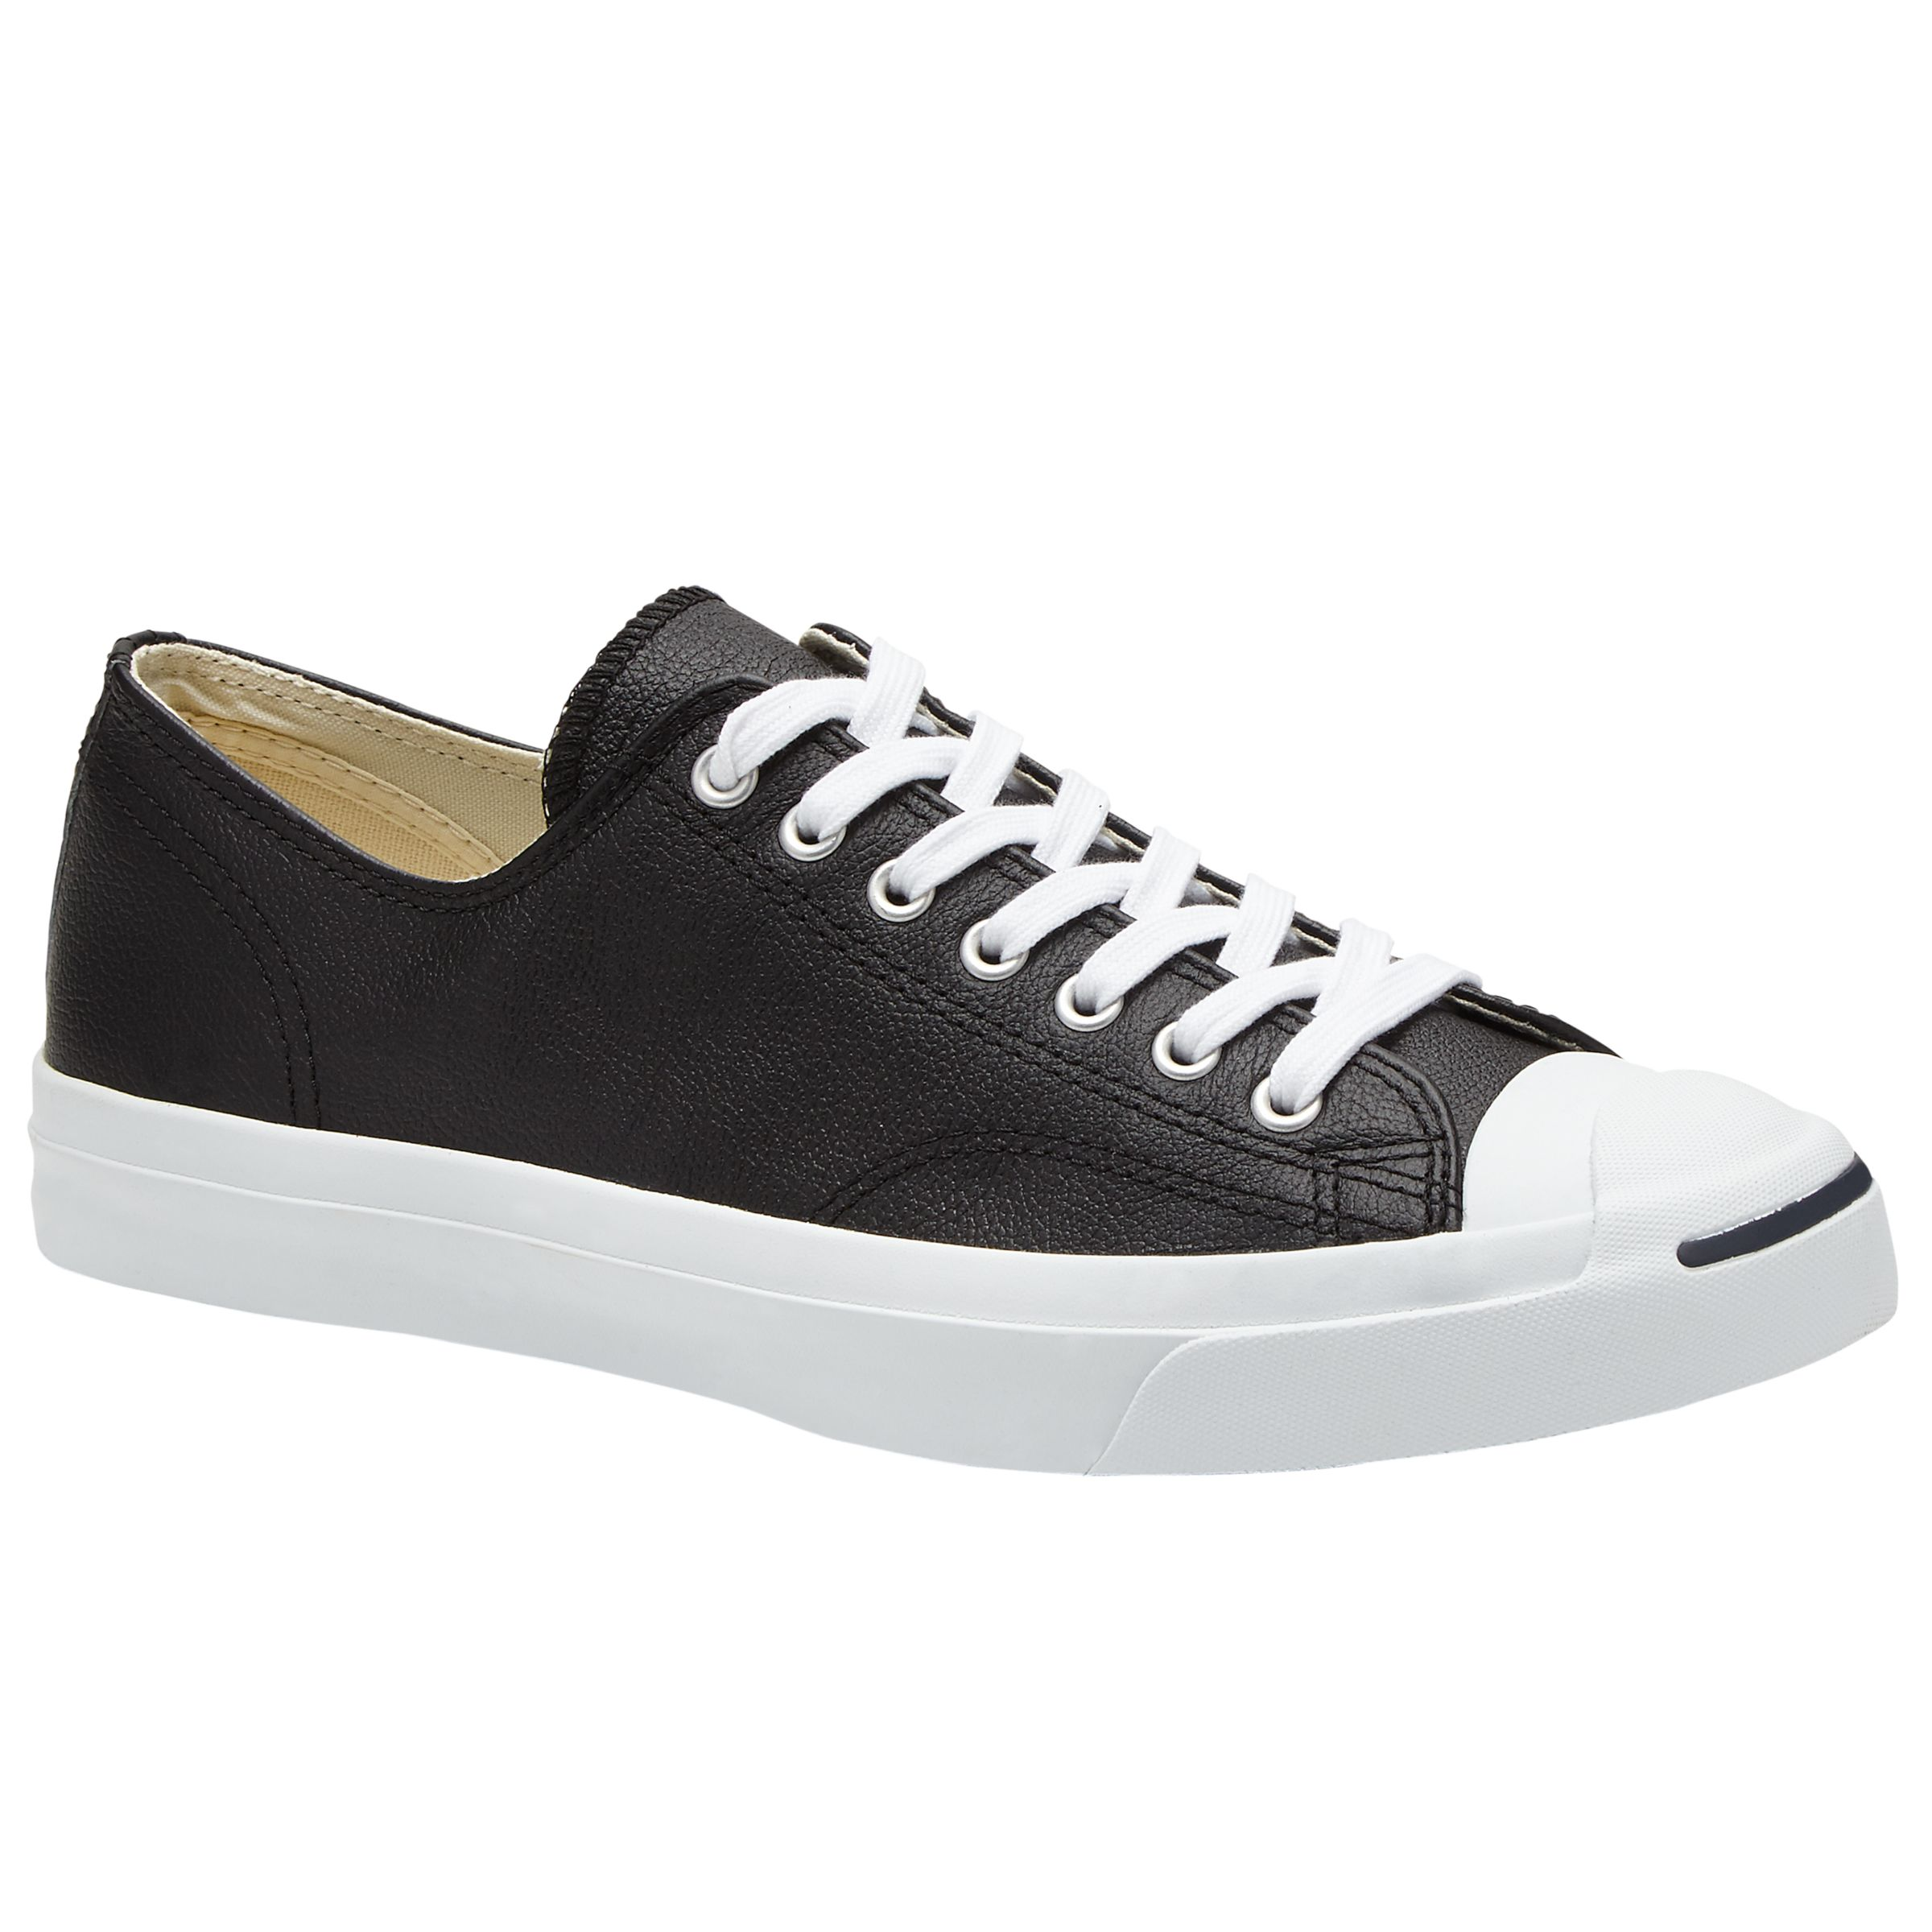 04e783b10fd6bc Converse Jack Purcell Lace-Up Leather Trainers at John Lewis   Partners